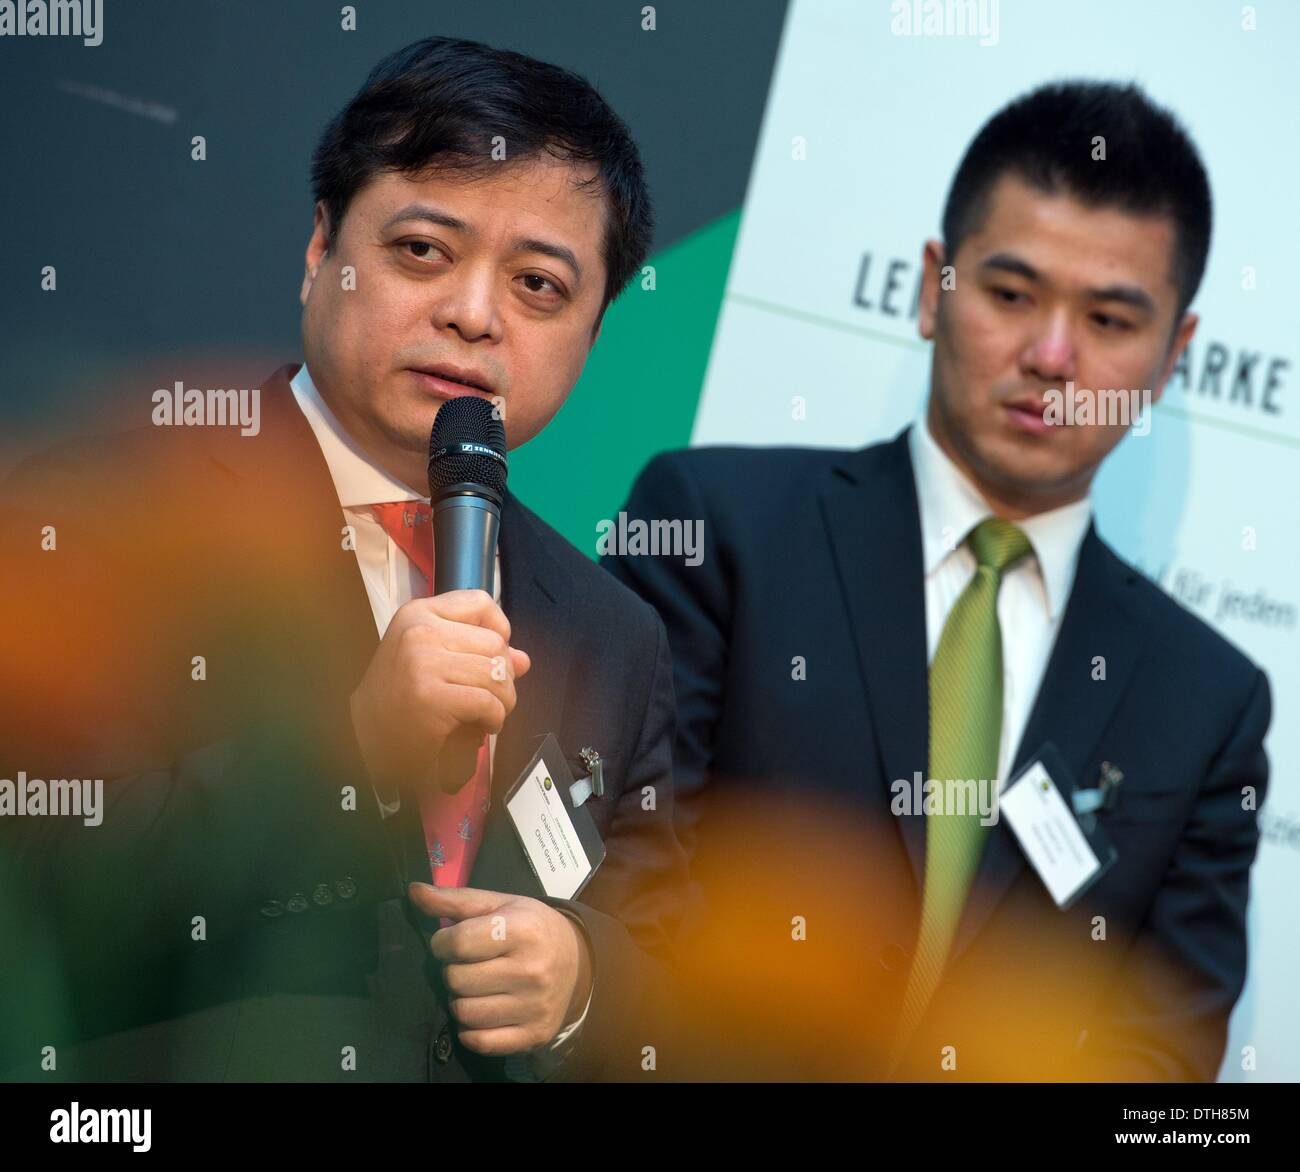 Chint Group Manager Cunhui Nan (L) speaks at the opening of the solar plant of the Astronergy Solarmodule GmbH company in Frankfurt Oder, Germany, 18 February 2014. Vice President of the Chint Group Chuan Lu is pictured behind Nan. The new Chinese owner presented his plans for the plant on the same day. The Astronergy Solarmodule GmbH took over the module factory of insolvent solar company Conergy in early 2014. About 200 jobs are supposed to be saved at the location. Astronergy is part of the worldwide operating Chint Group. Photo: Patrick Pleul/ZB - Stock Image